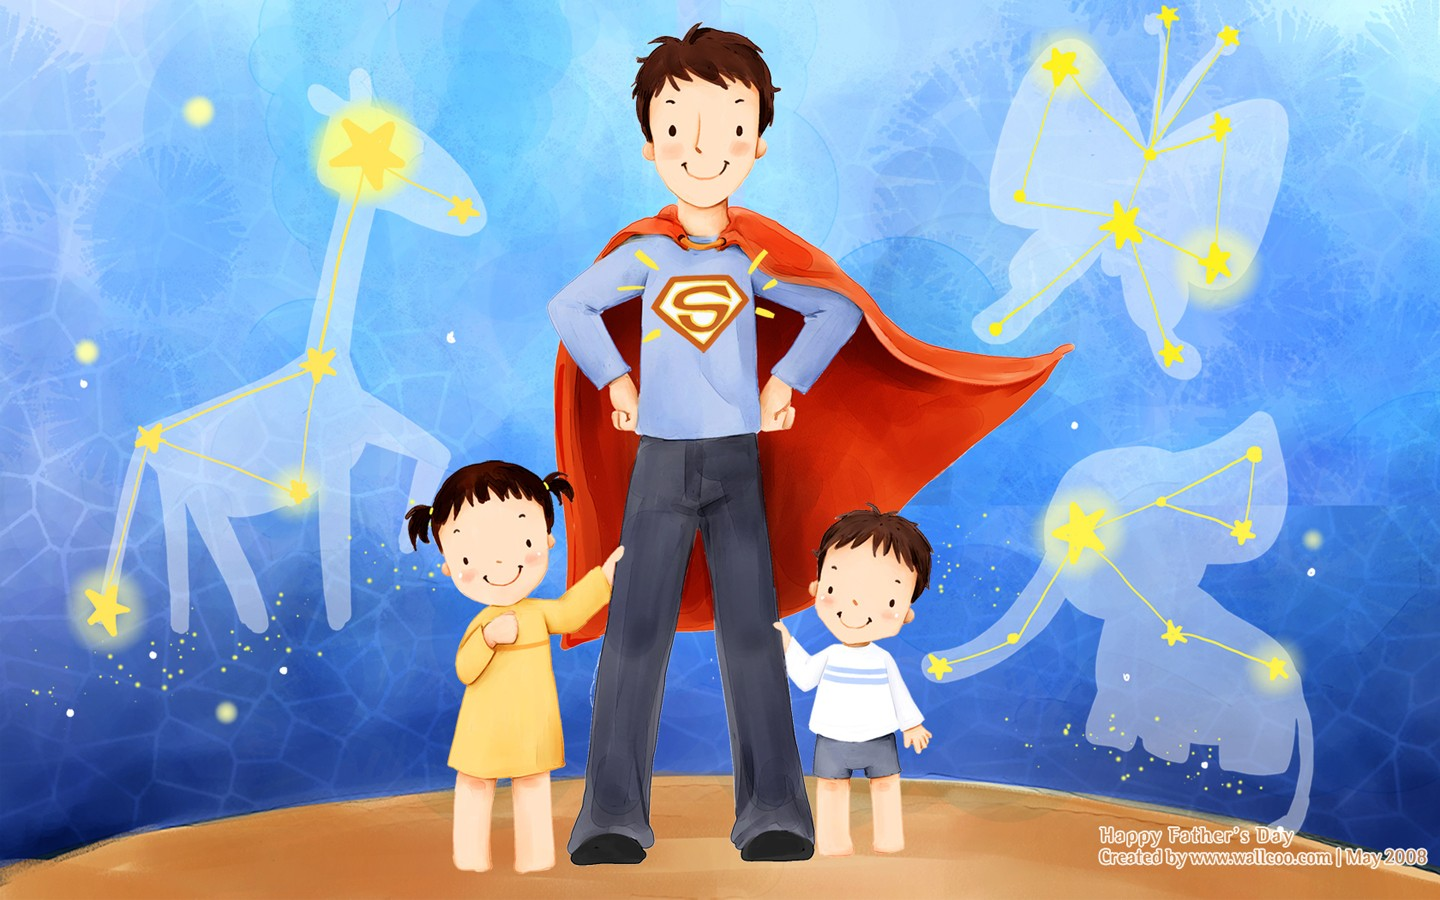 happy father's day - children's illustration for father's day